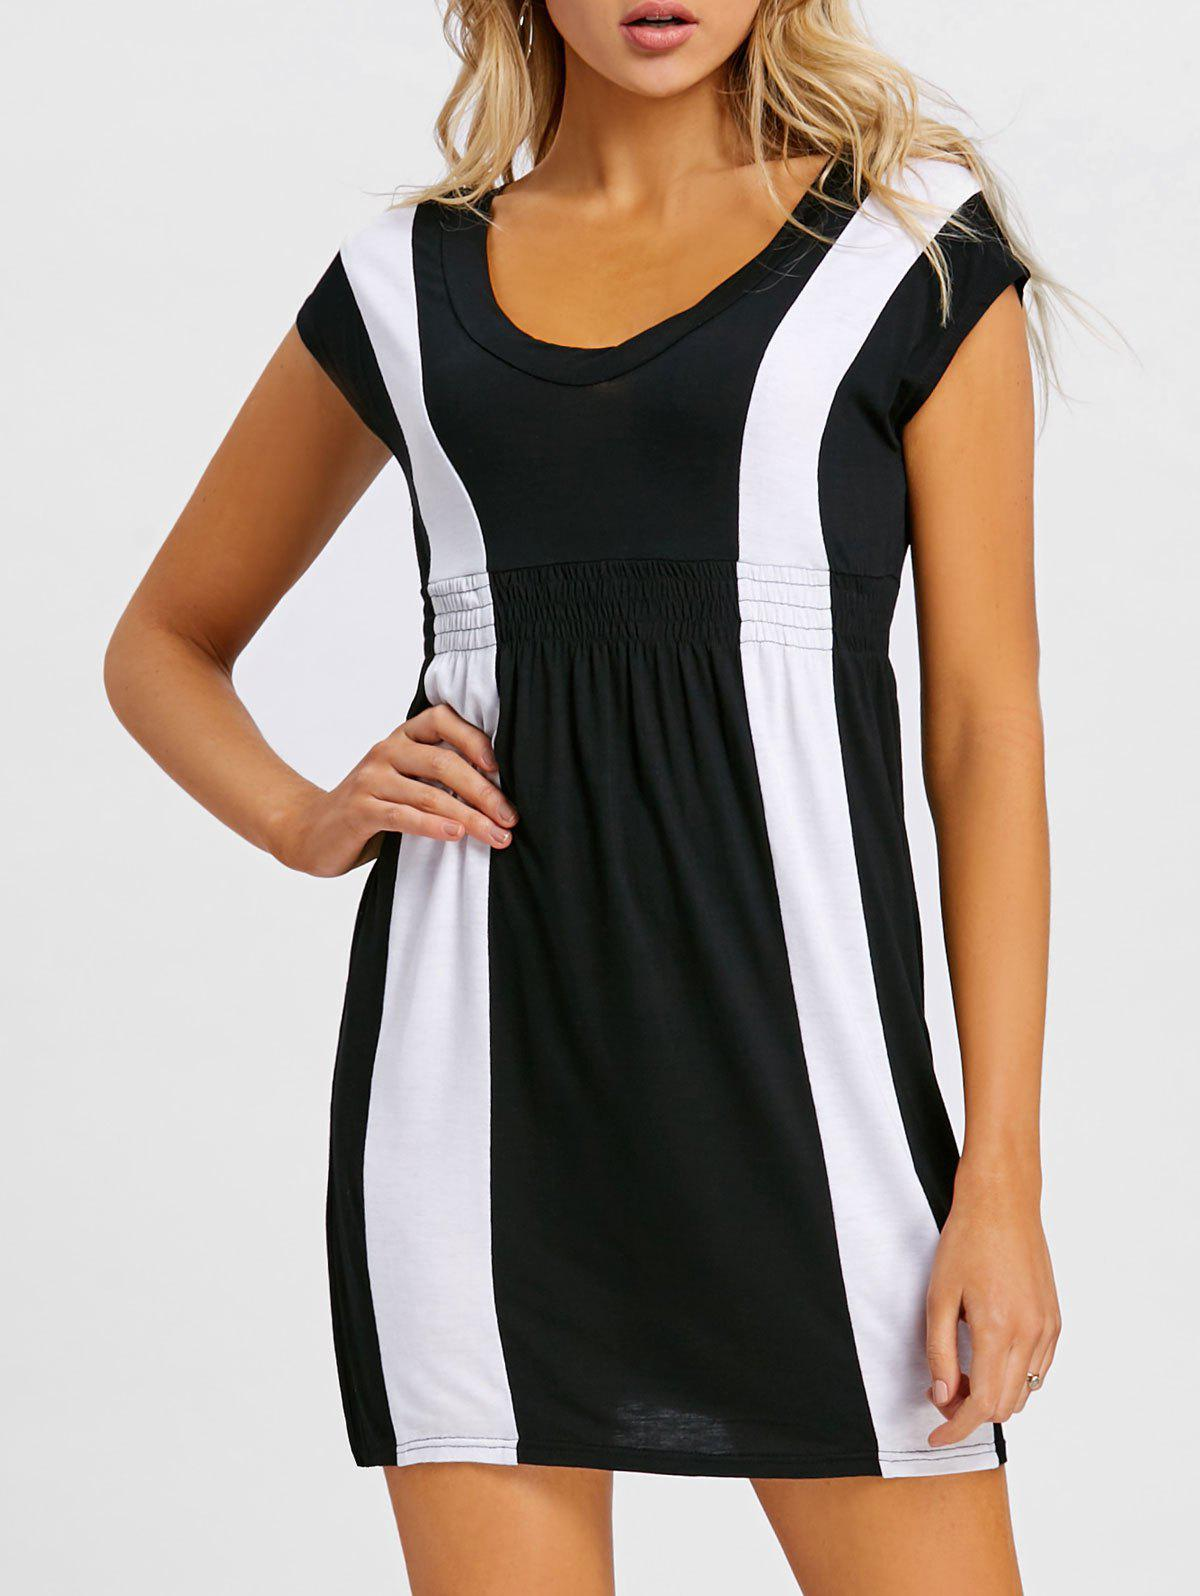 Empire Waist Mini Casual Dress - BLACK 2XL